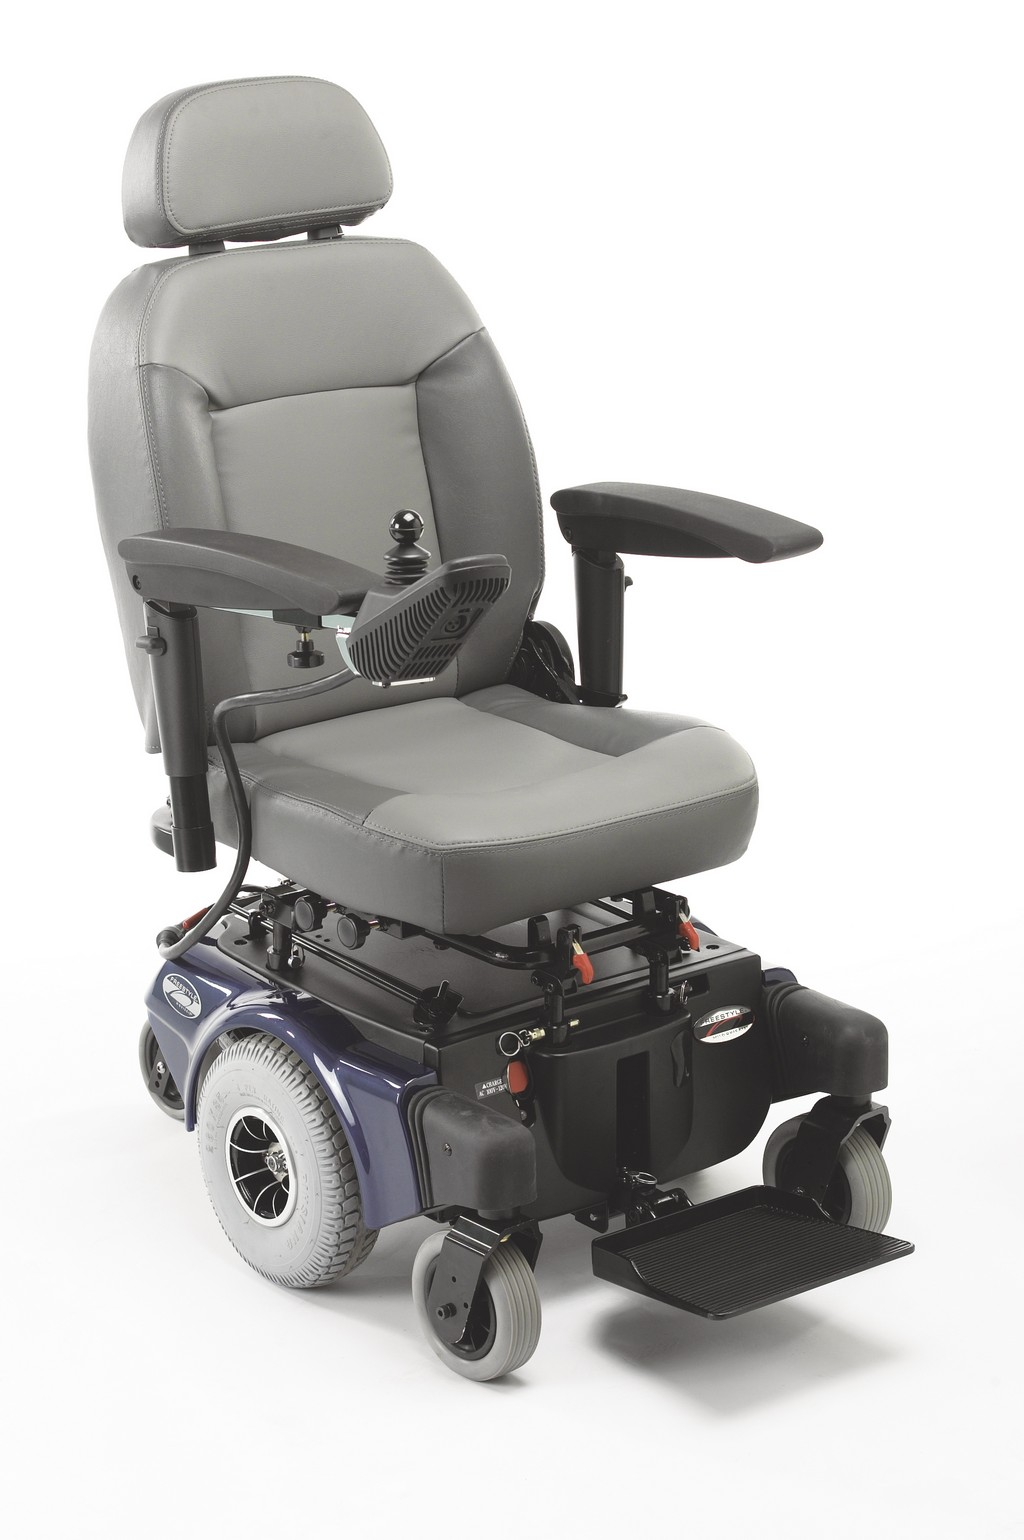 quickie electric wheelchair, merits electric wheelchair, power wheel chair covers hevey, power wheelchair repair